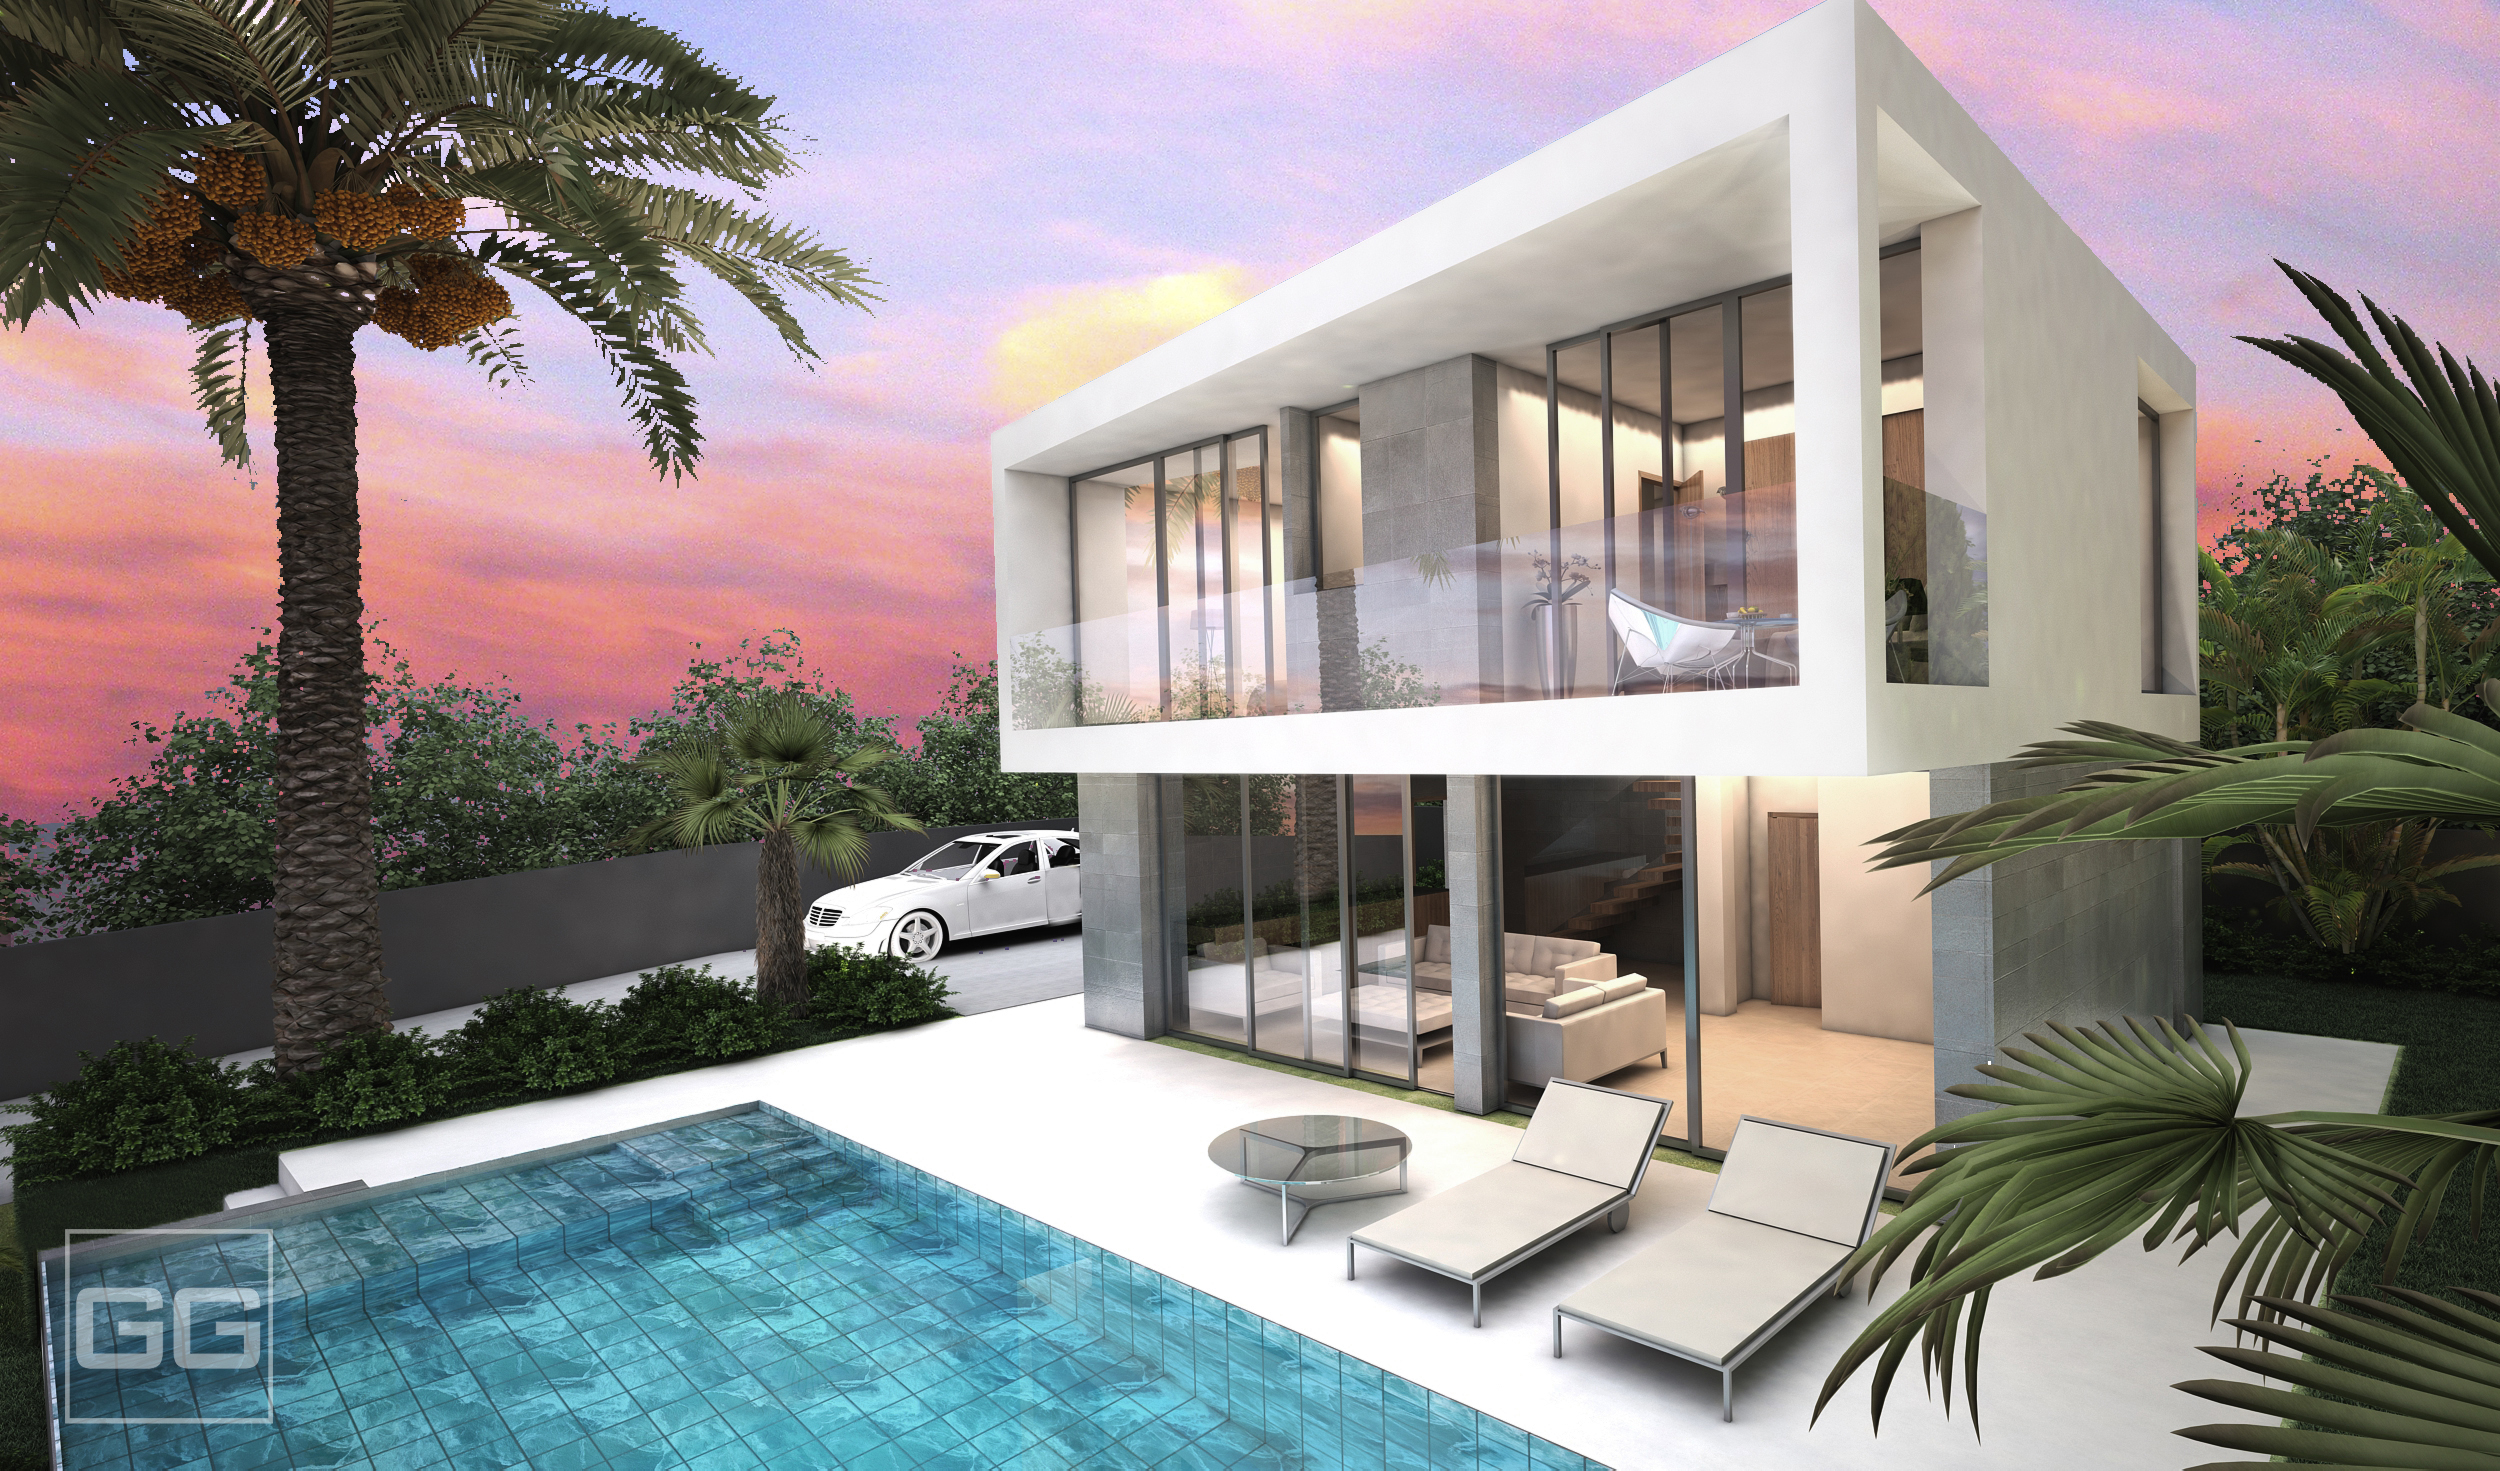 New Build in Alicante